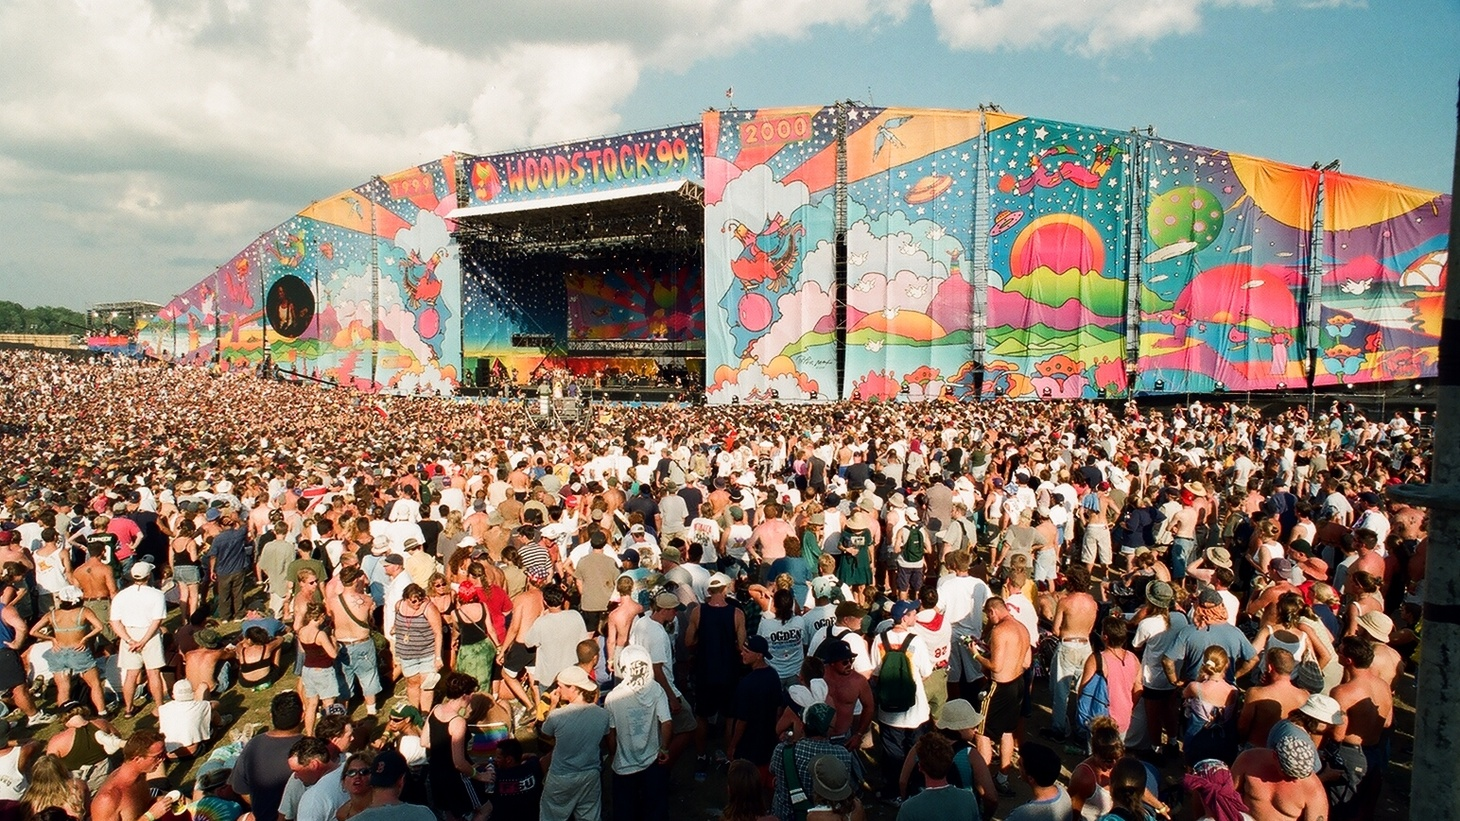 The 1999 Woodstock music festival was held in Rome, New York, on a decommissioned Air Force base.